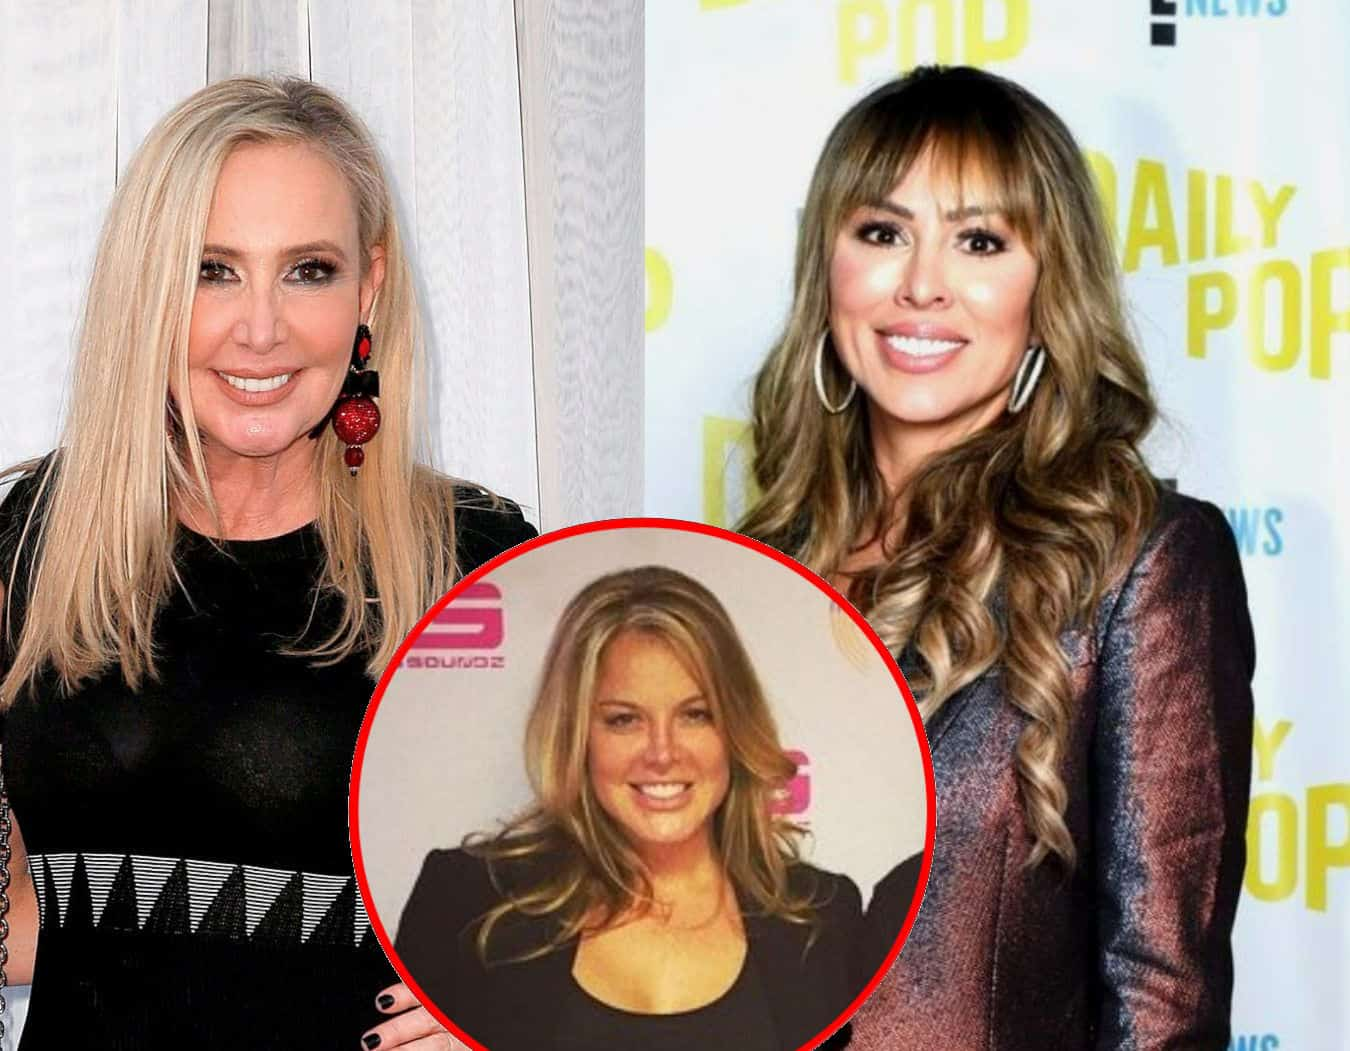 VIDEO: RHOC Stars Shannon Beador and Kelly Dodd Spotted Filming with Newbie Elizabeth Vargas and Co-Stars for the New Season